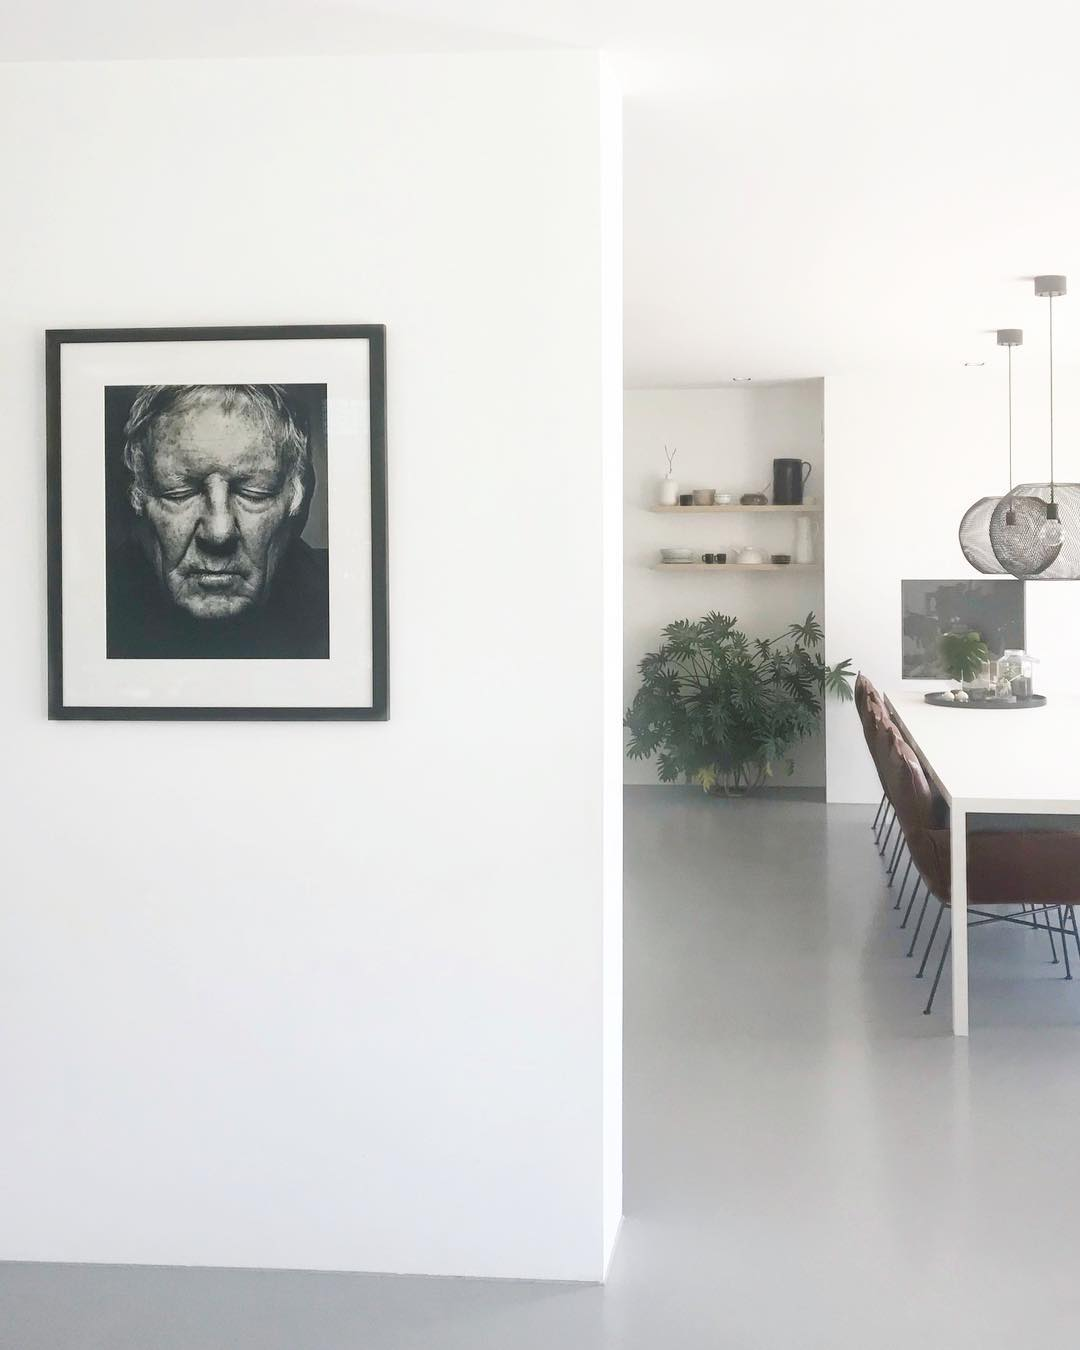 181 Instagram interieur inspiratie top 5